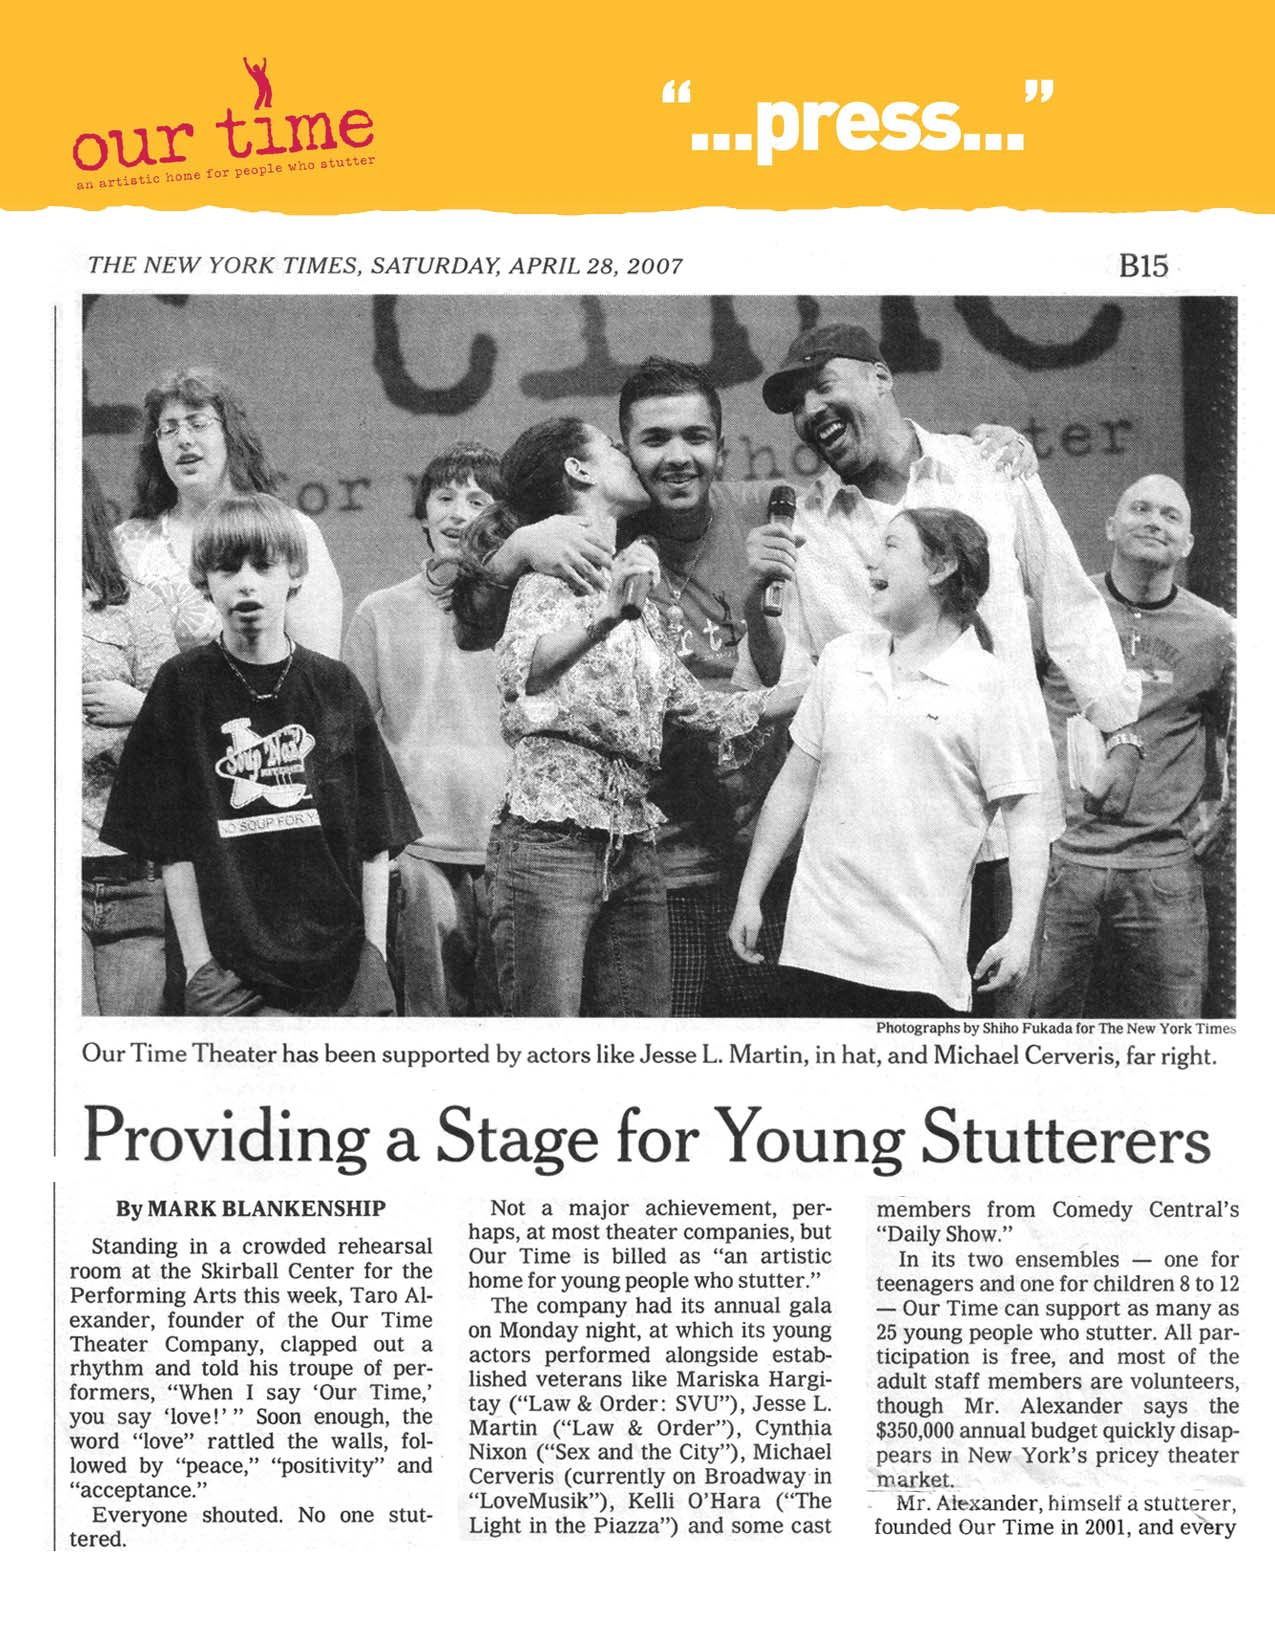 Providing a Stage for Young Stutterers